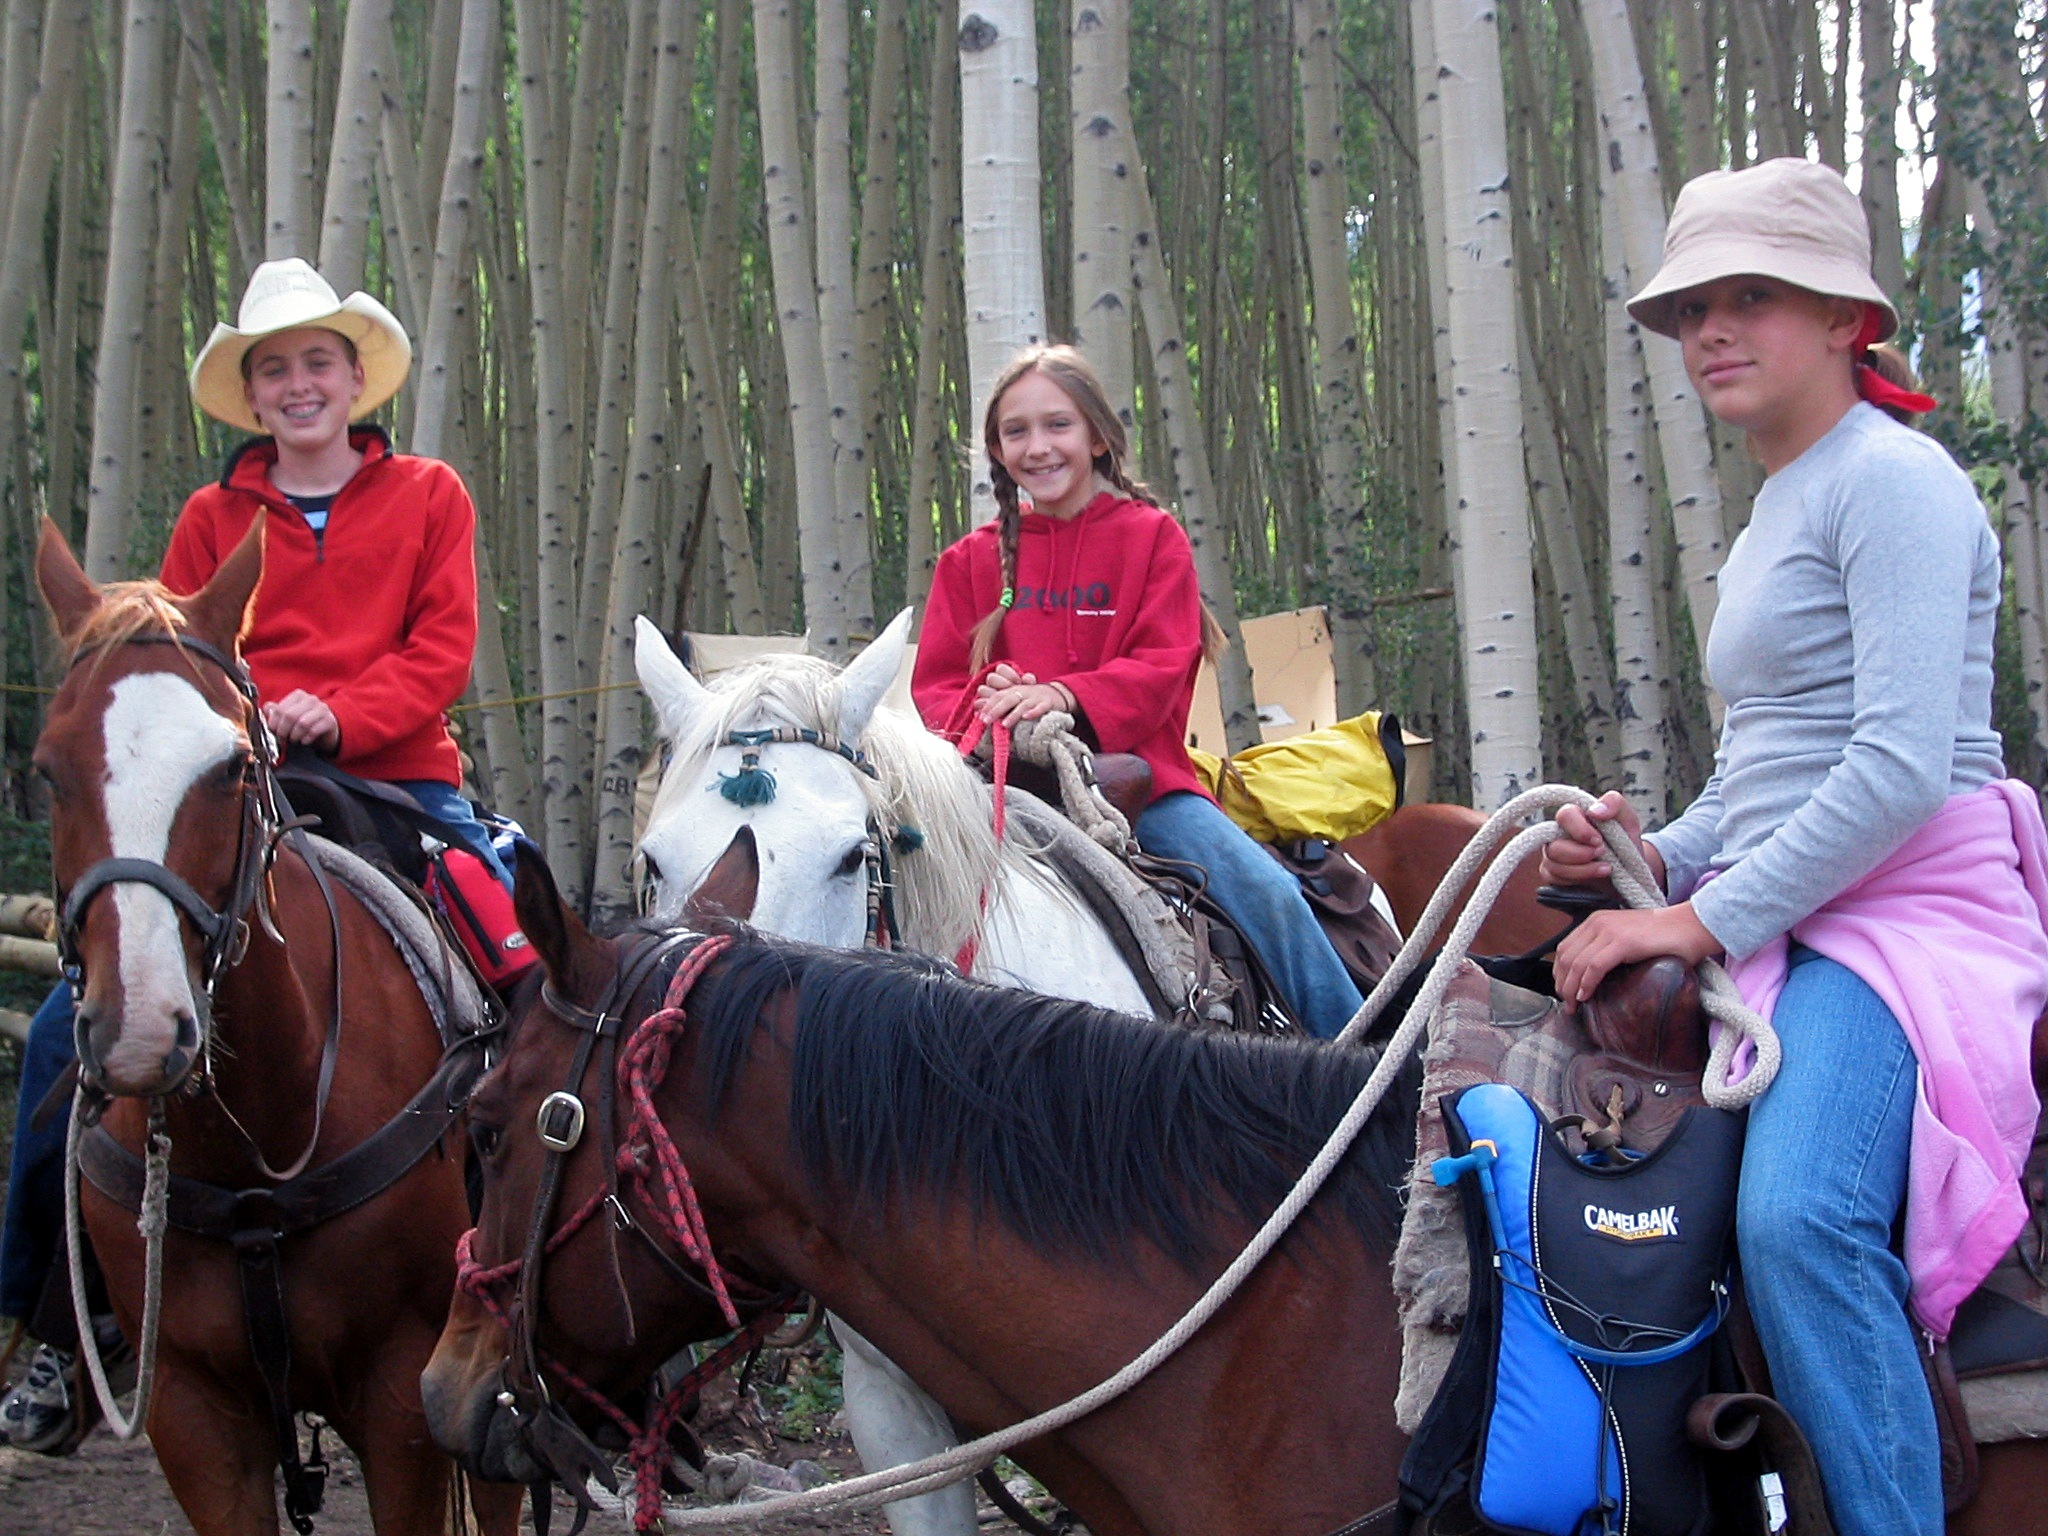 Three girls on horses ride through the woods of Ouray County, Colorado.